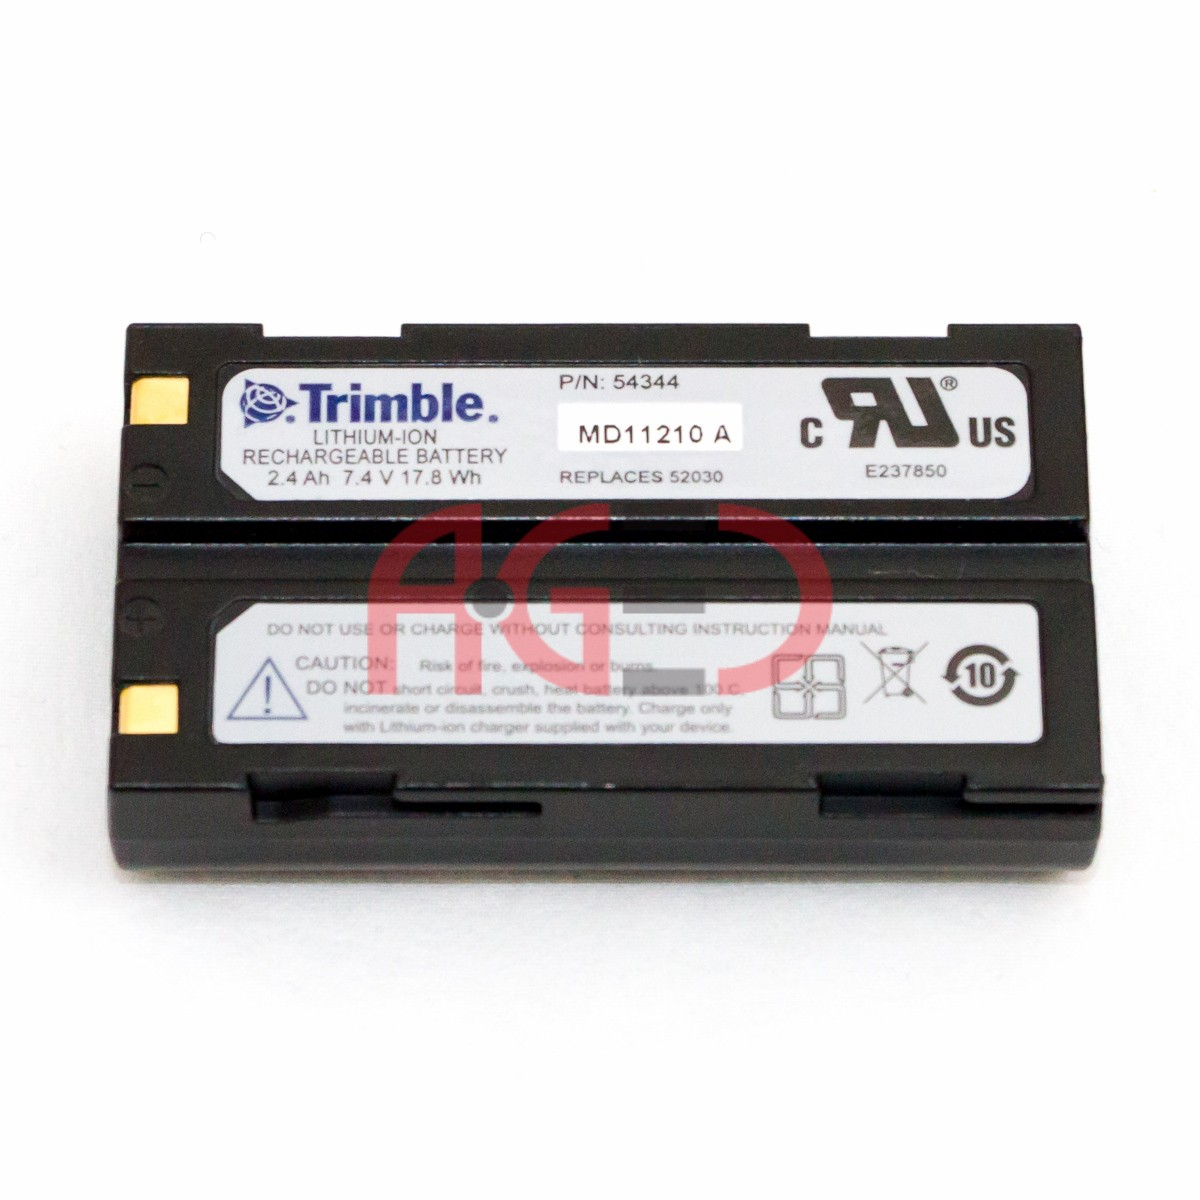 Trimble DiNi 0.3. Фото N12